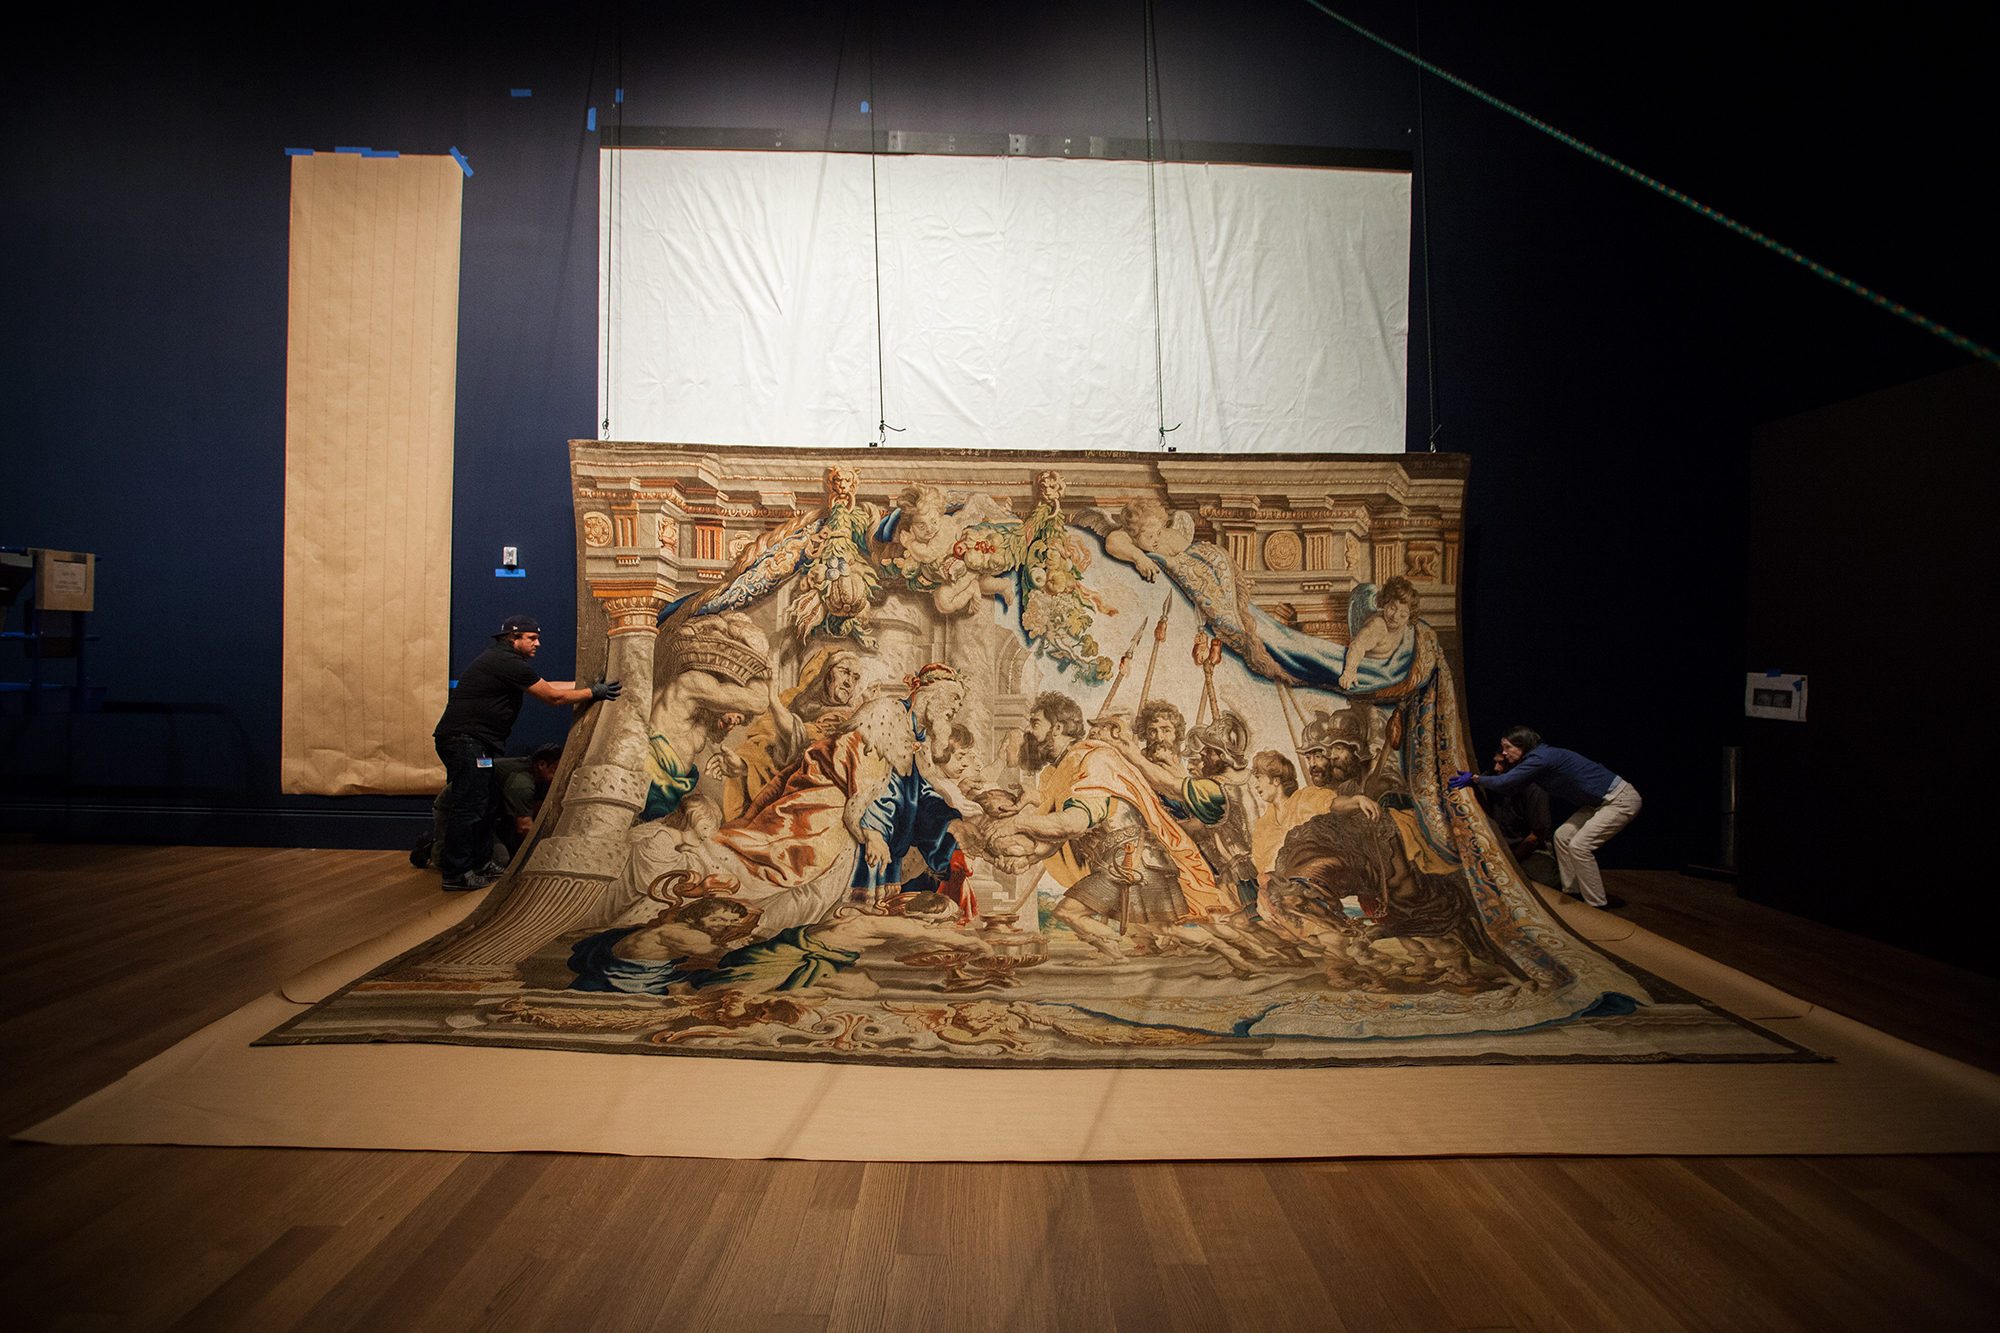 Peter Paul Rubens Unrolls in L.A.